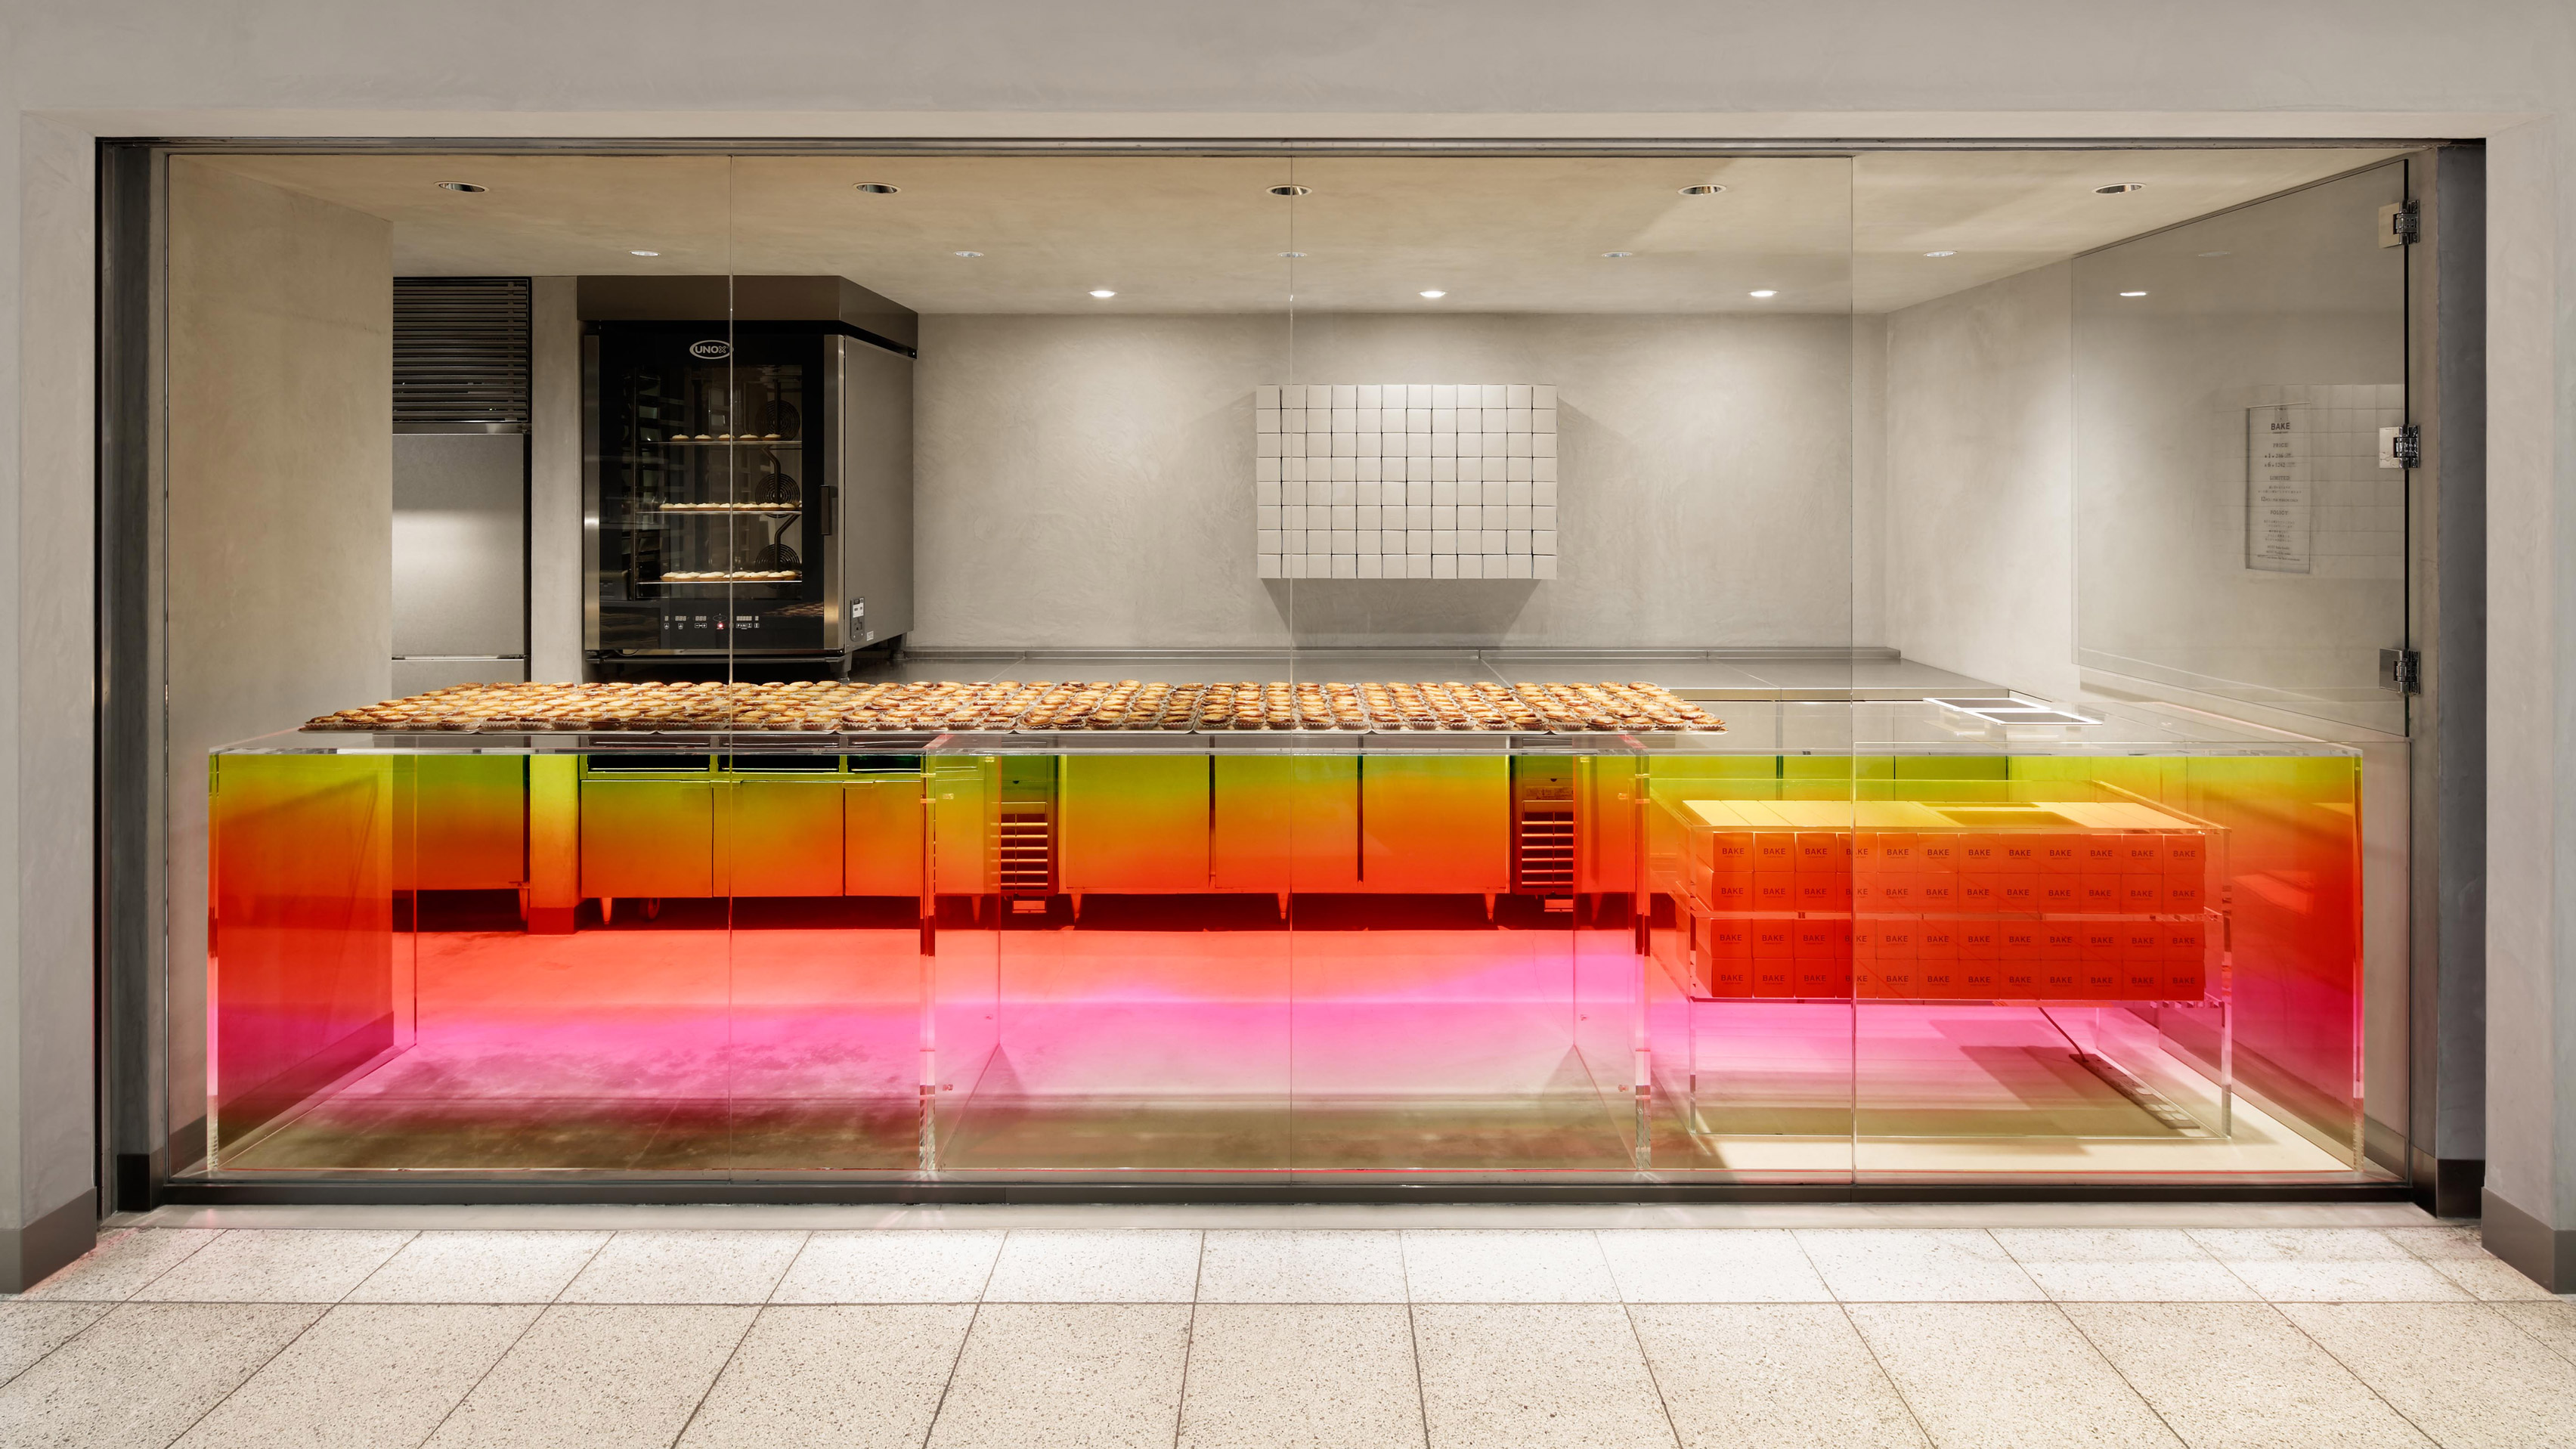 Sunset Hued Counter Welcomes Customers At Tokyo Cheese Tart Shop By Yota  Kakuda